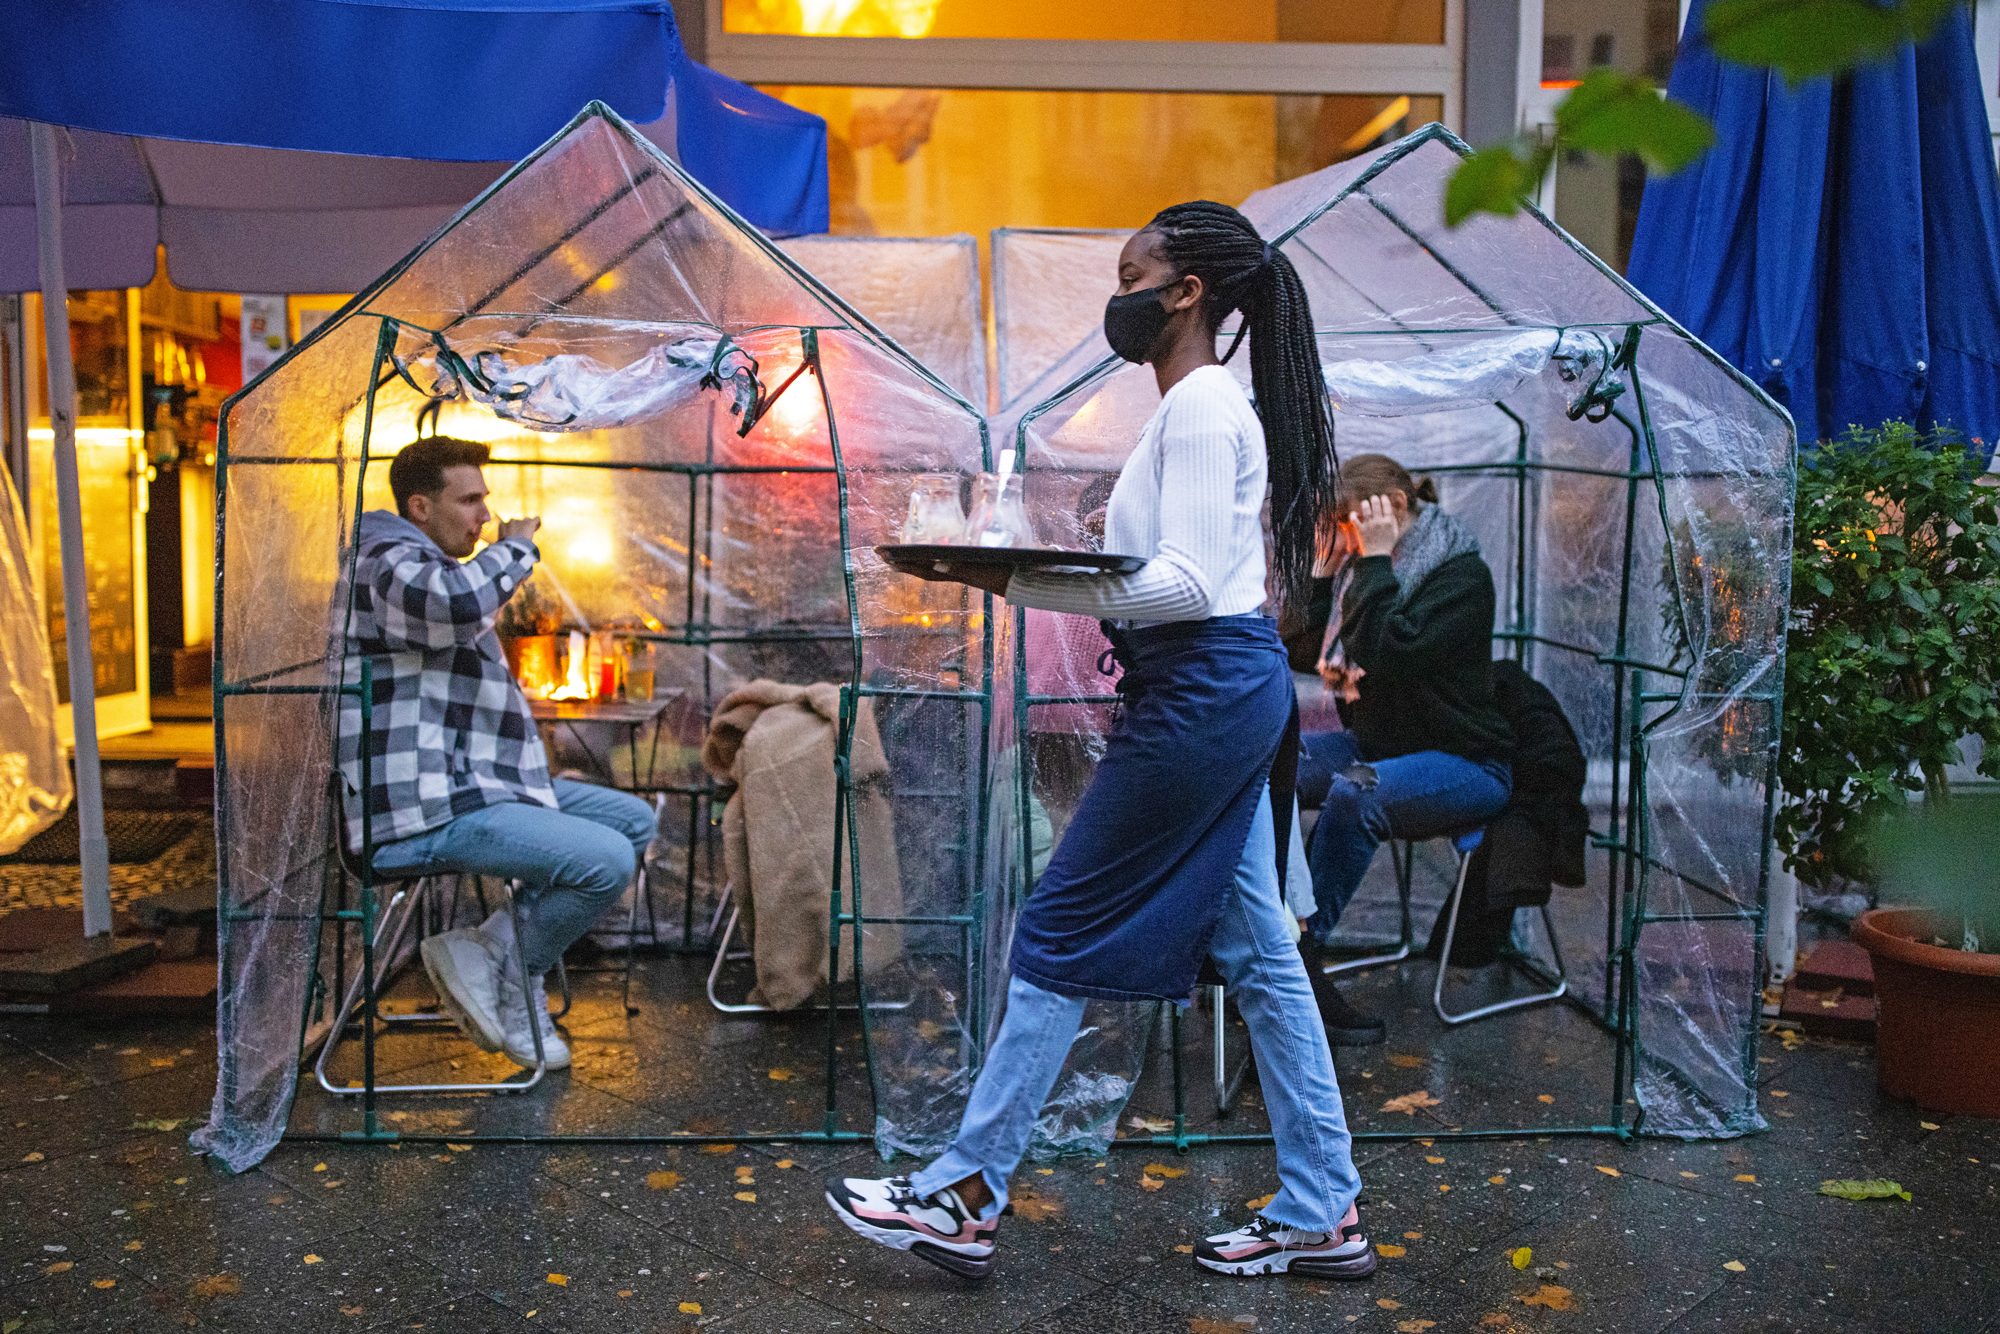 People sitting inside plastic tents at outdoors cafe with restaurant server wearing face mask carrying a serving tray.